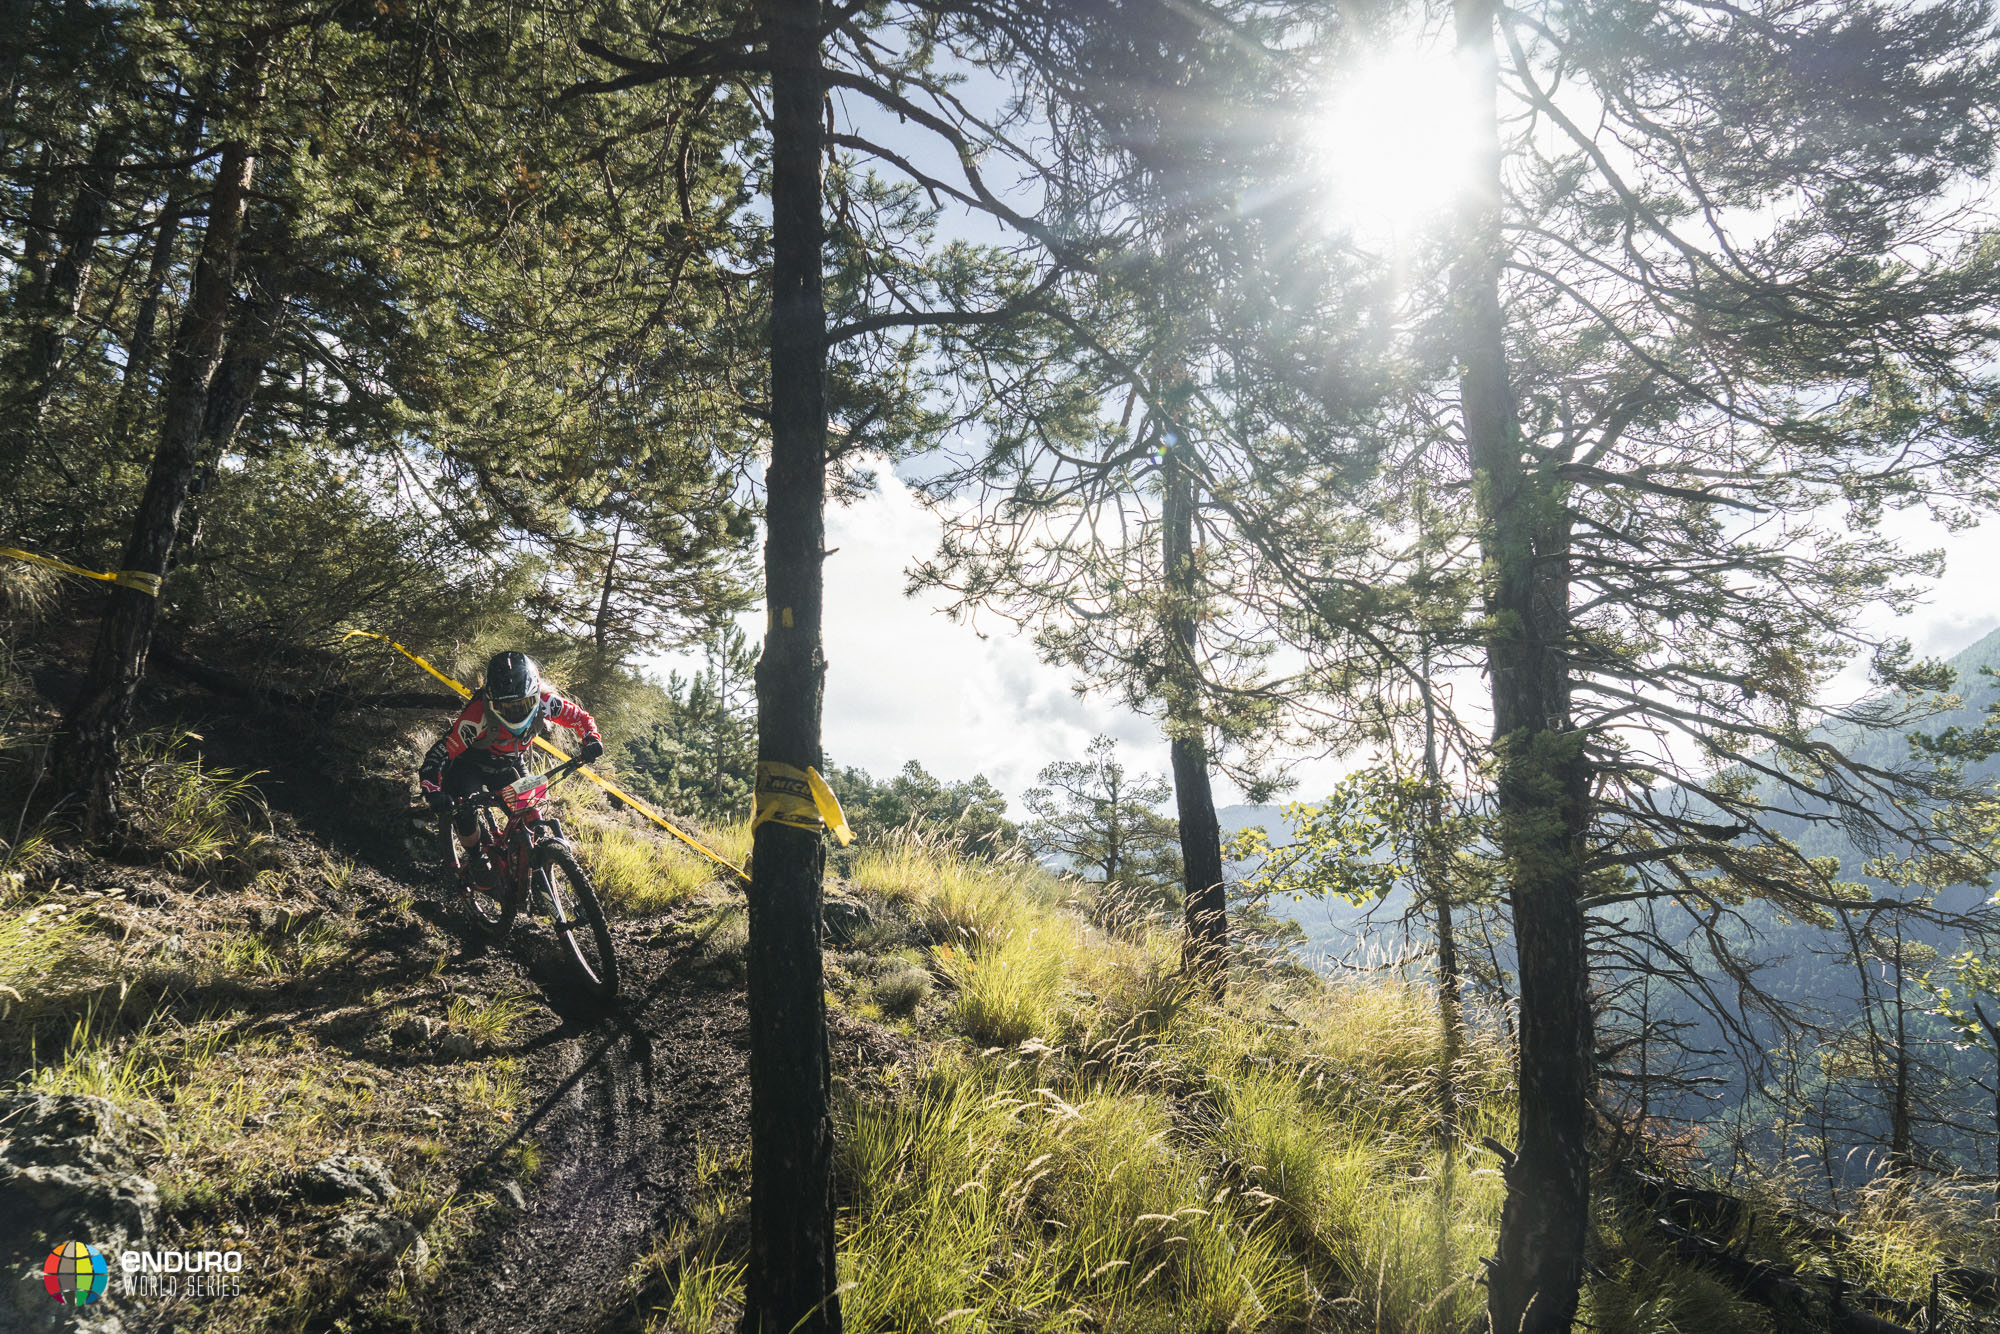 Isabeau Courderier fights the slick singletrack on stage 1